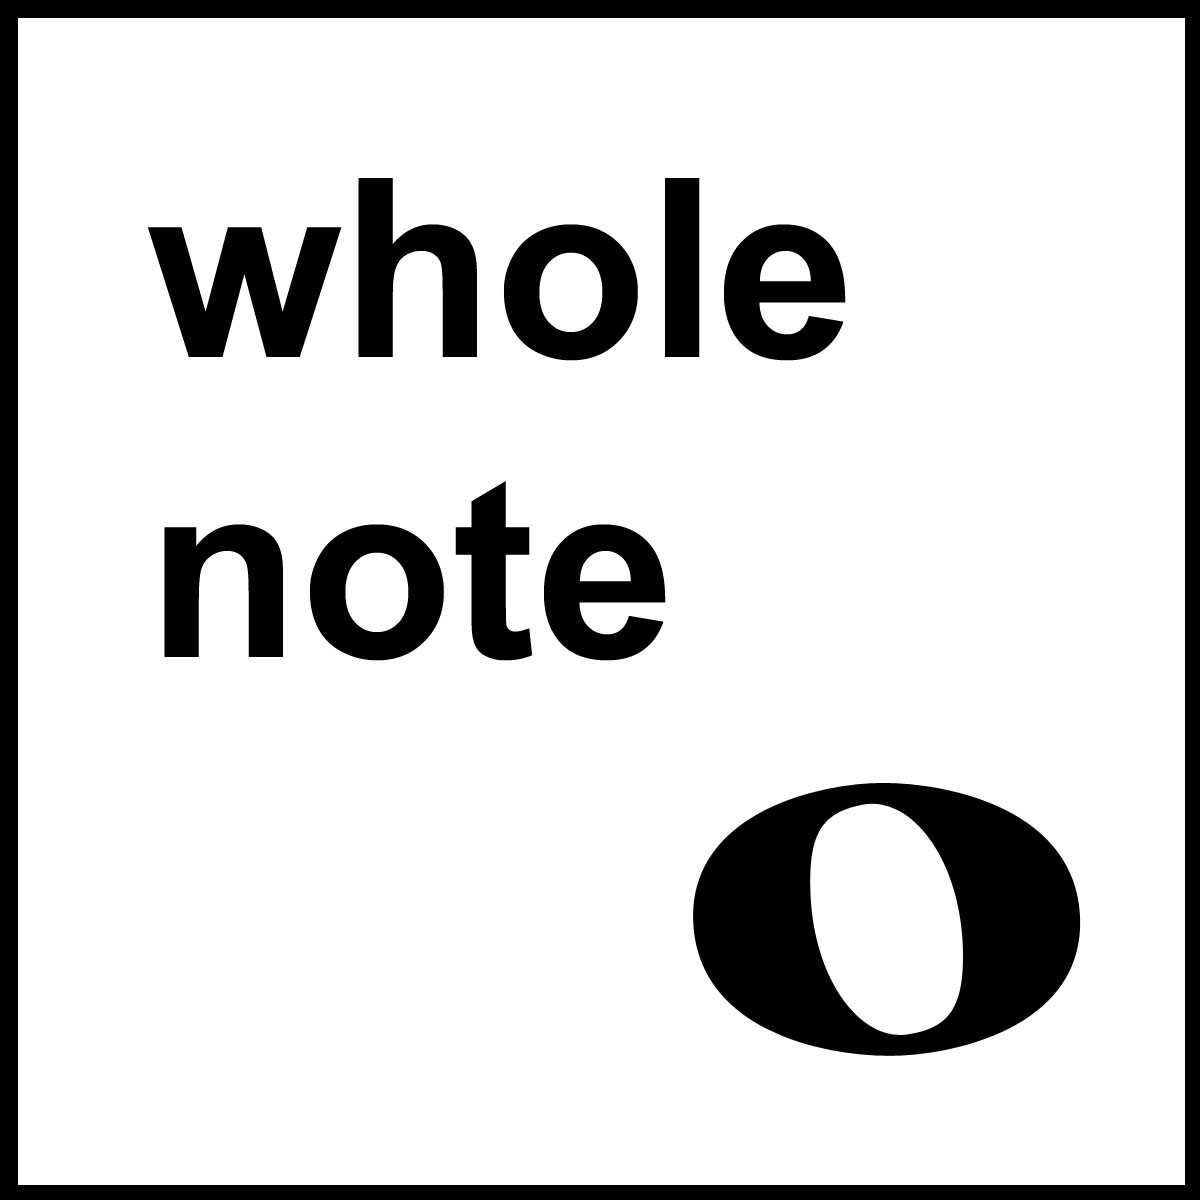 A Whole Note